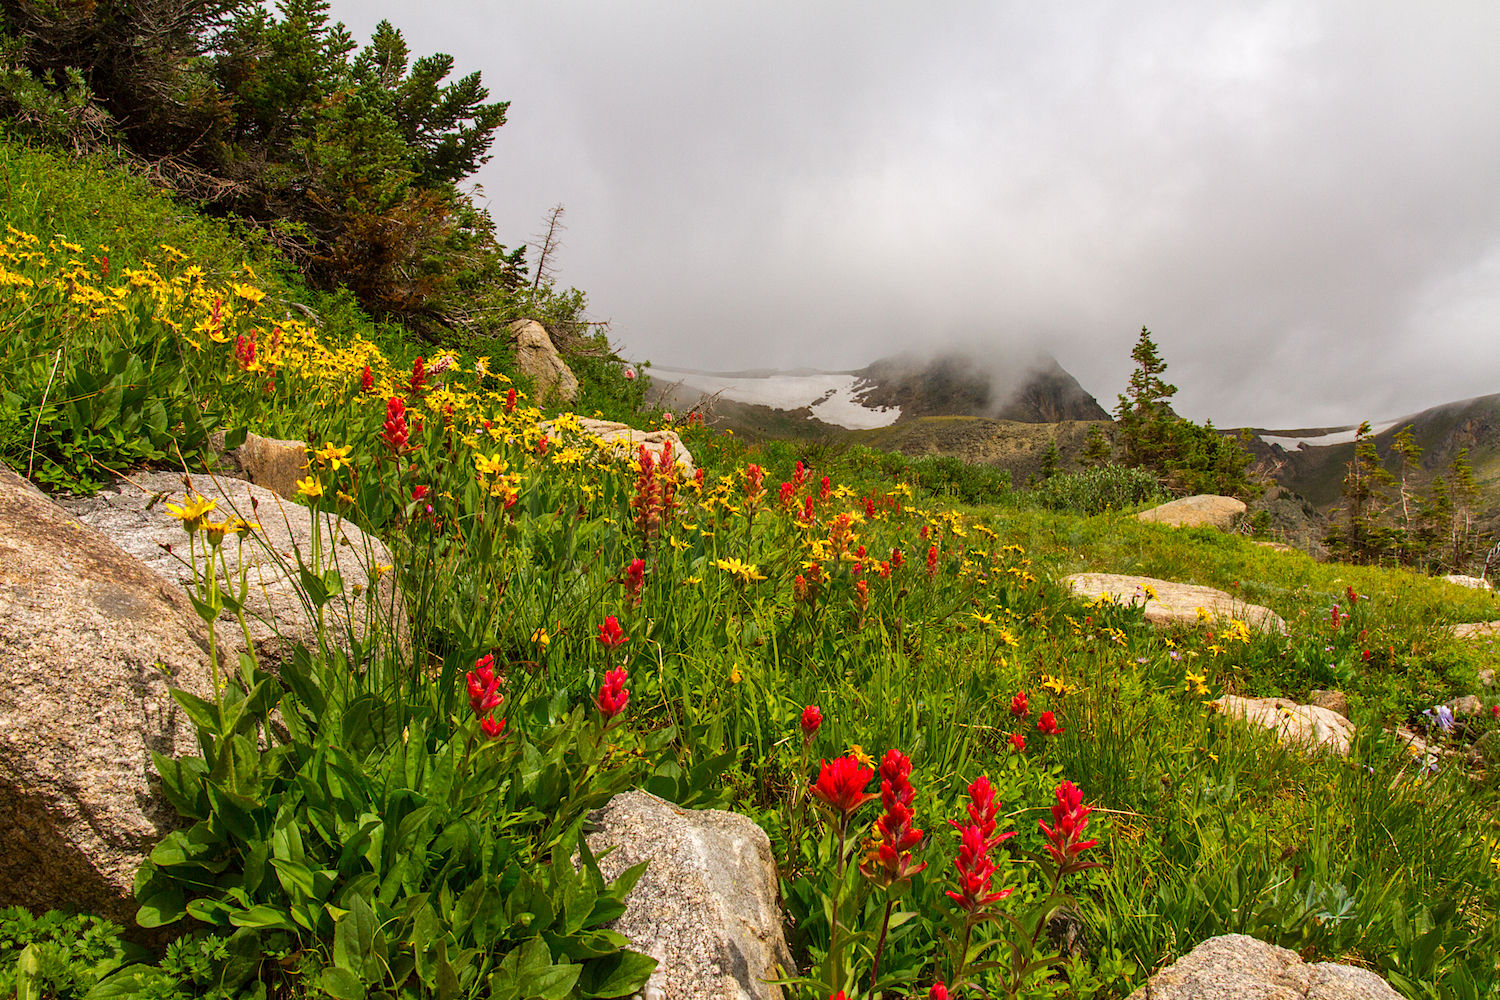 Wildflowers along trail, Image # 9892